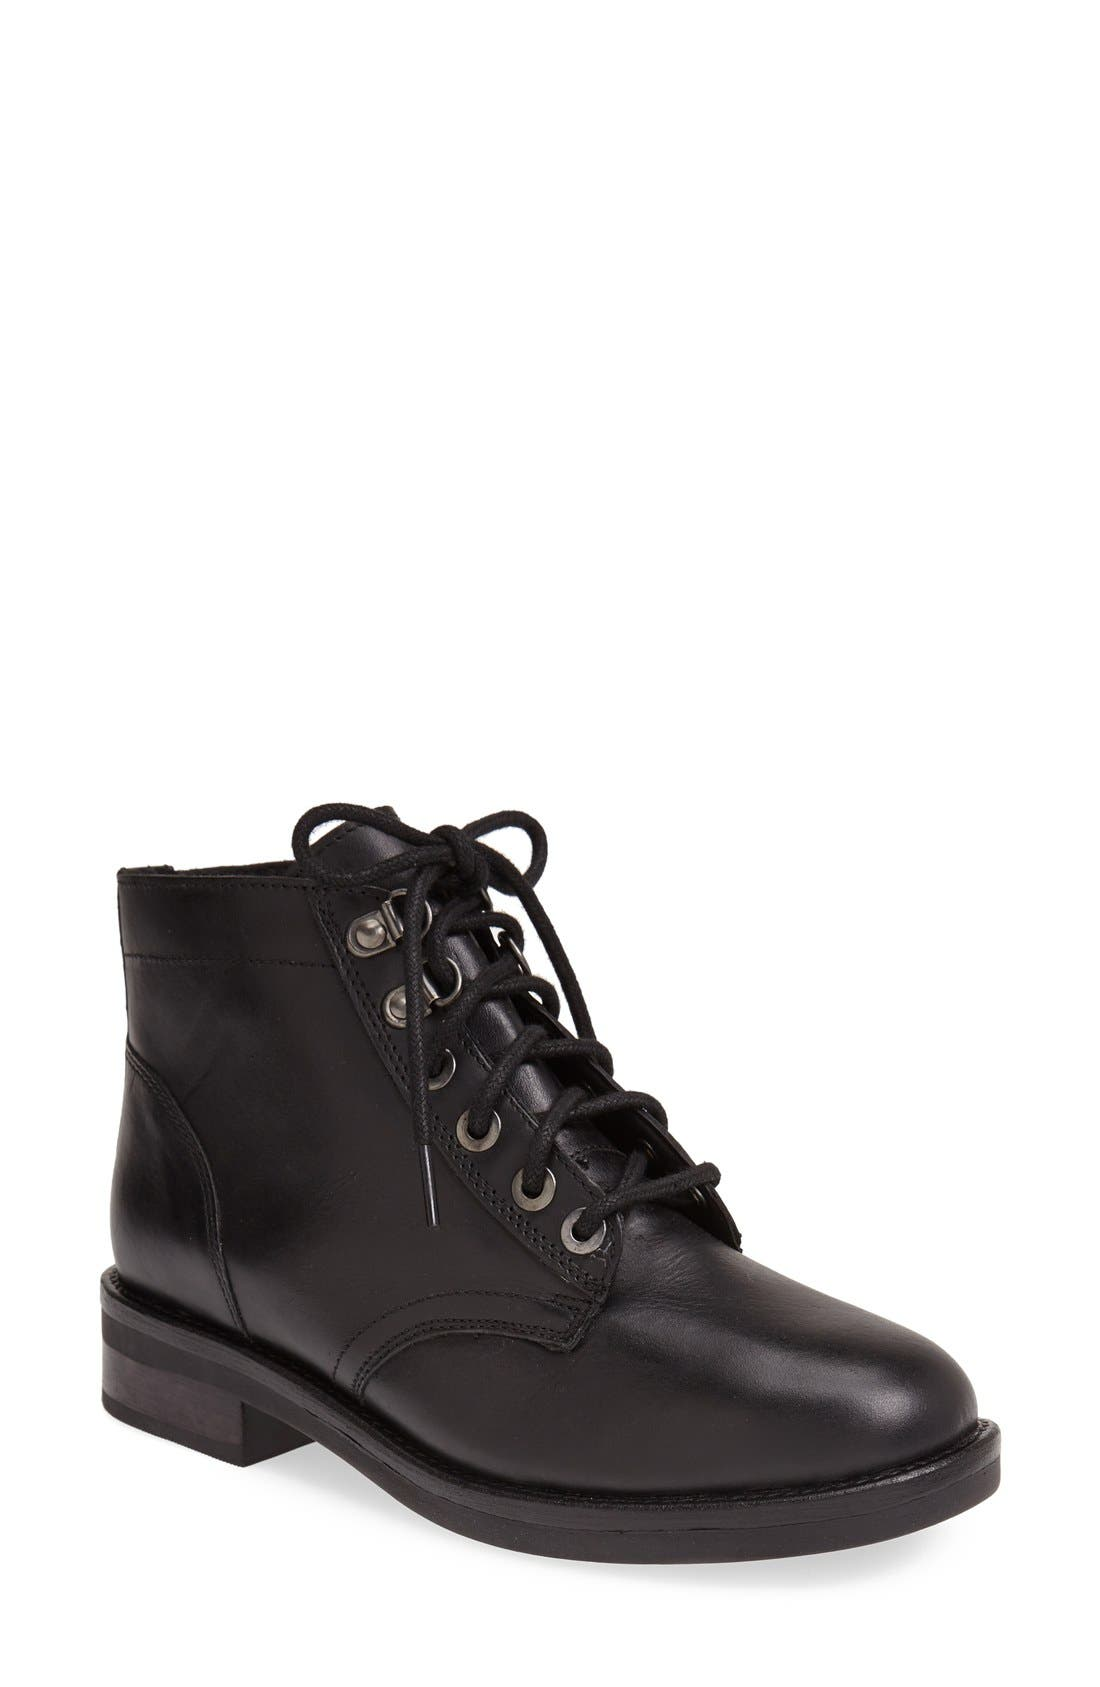 Main Image - Topshop 'Alpha' Ankle Boot (Women)